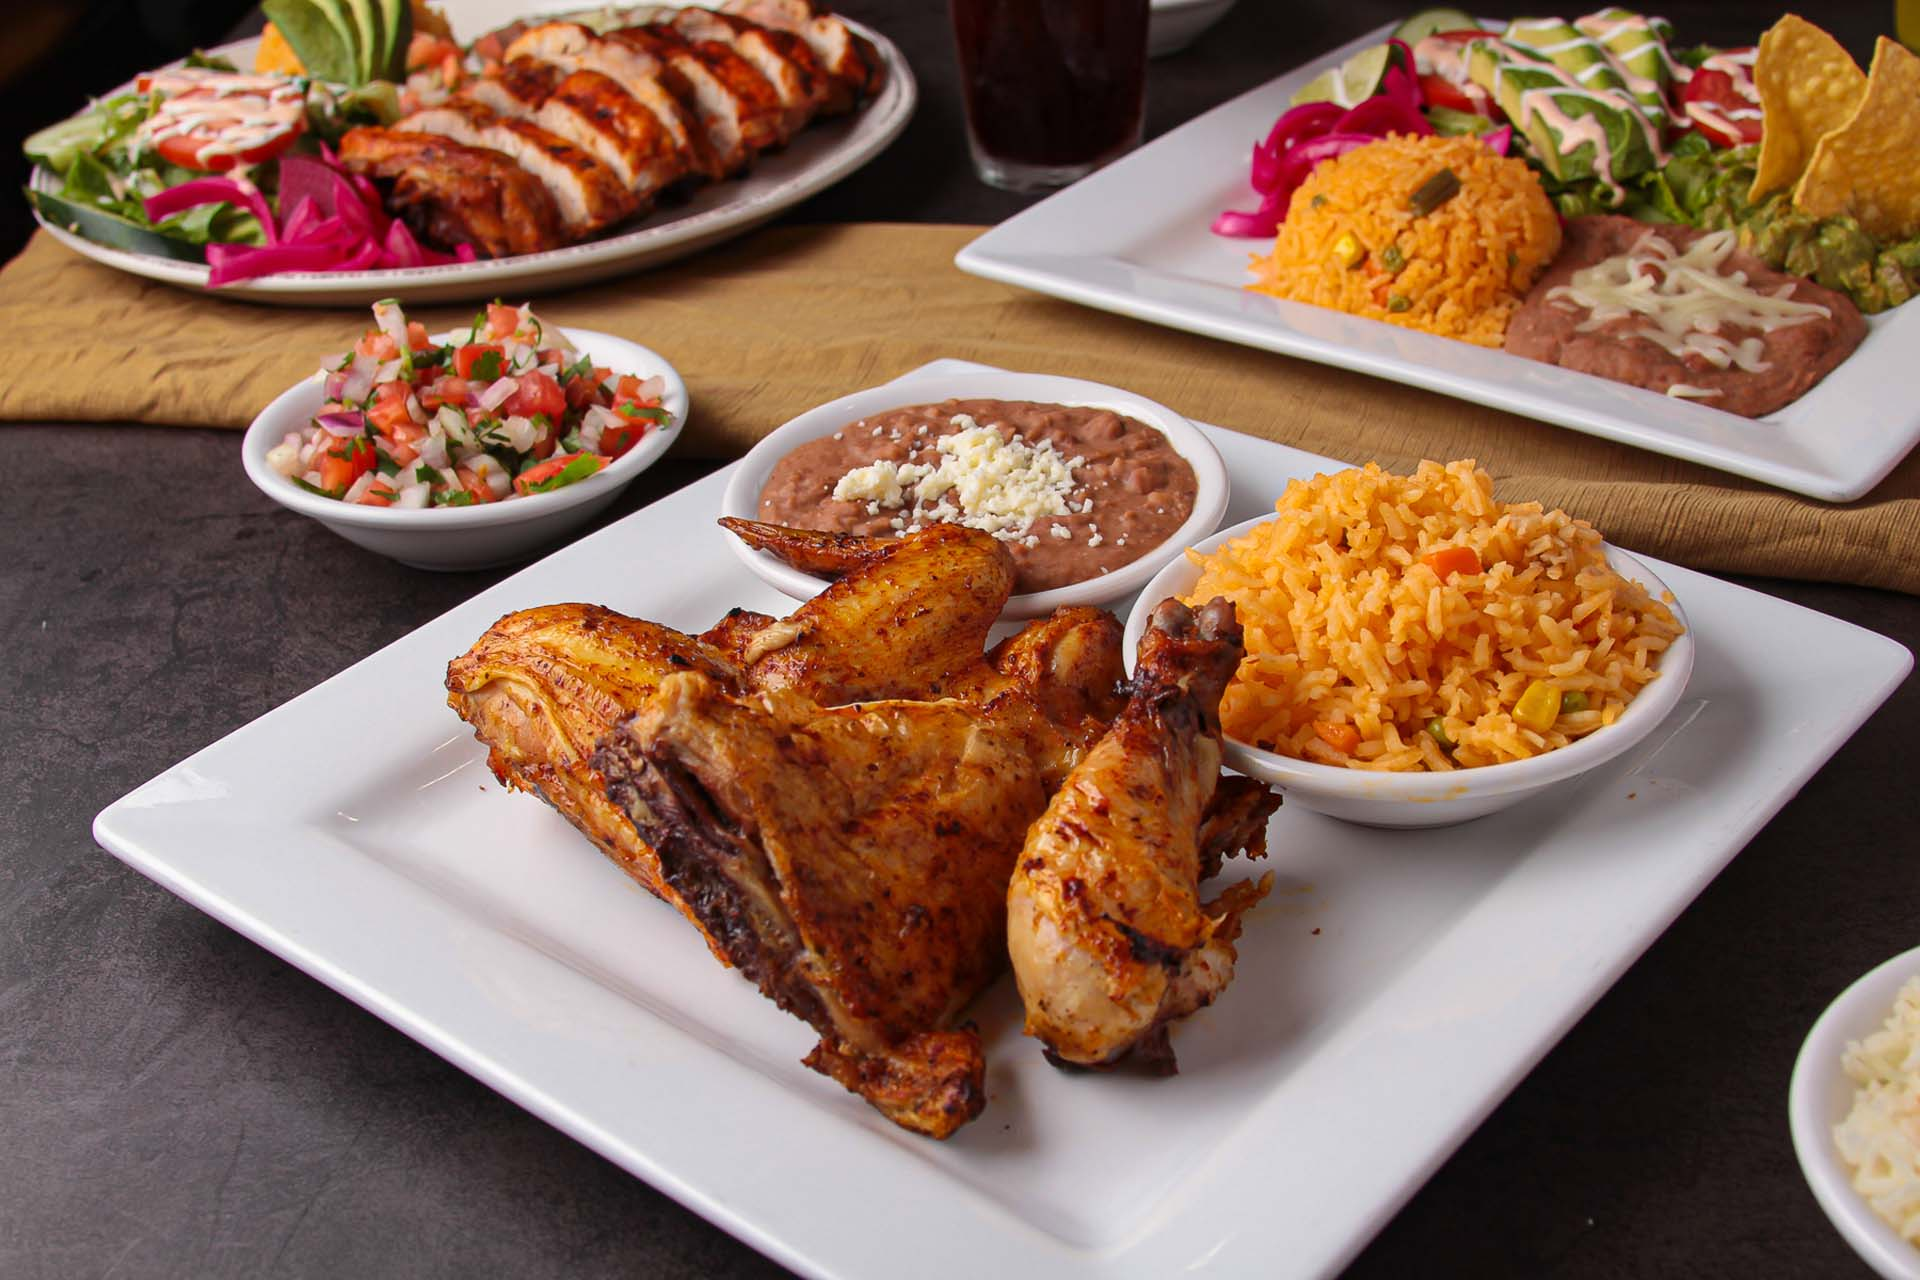 chicken-grilled-autentic-mexican-food